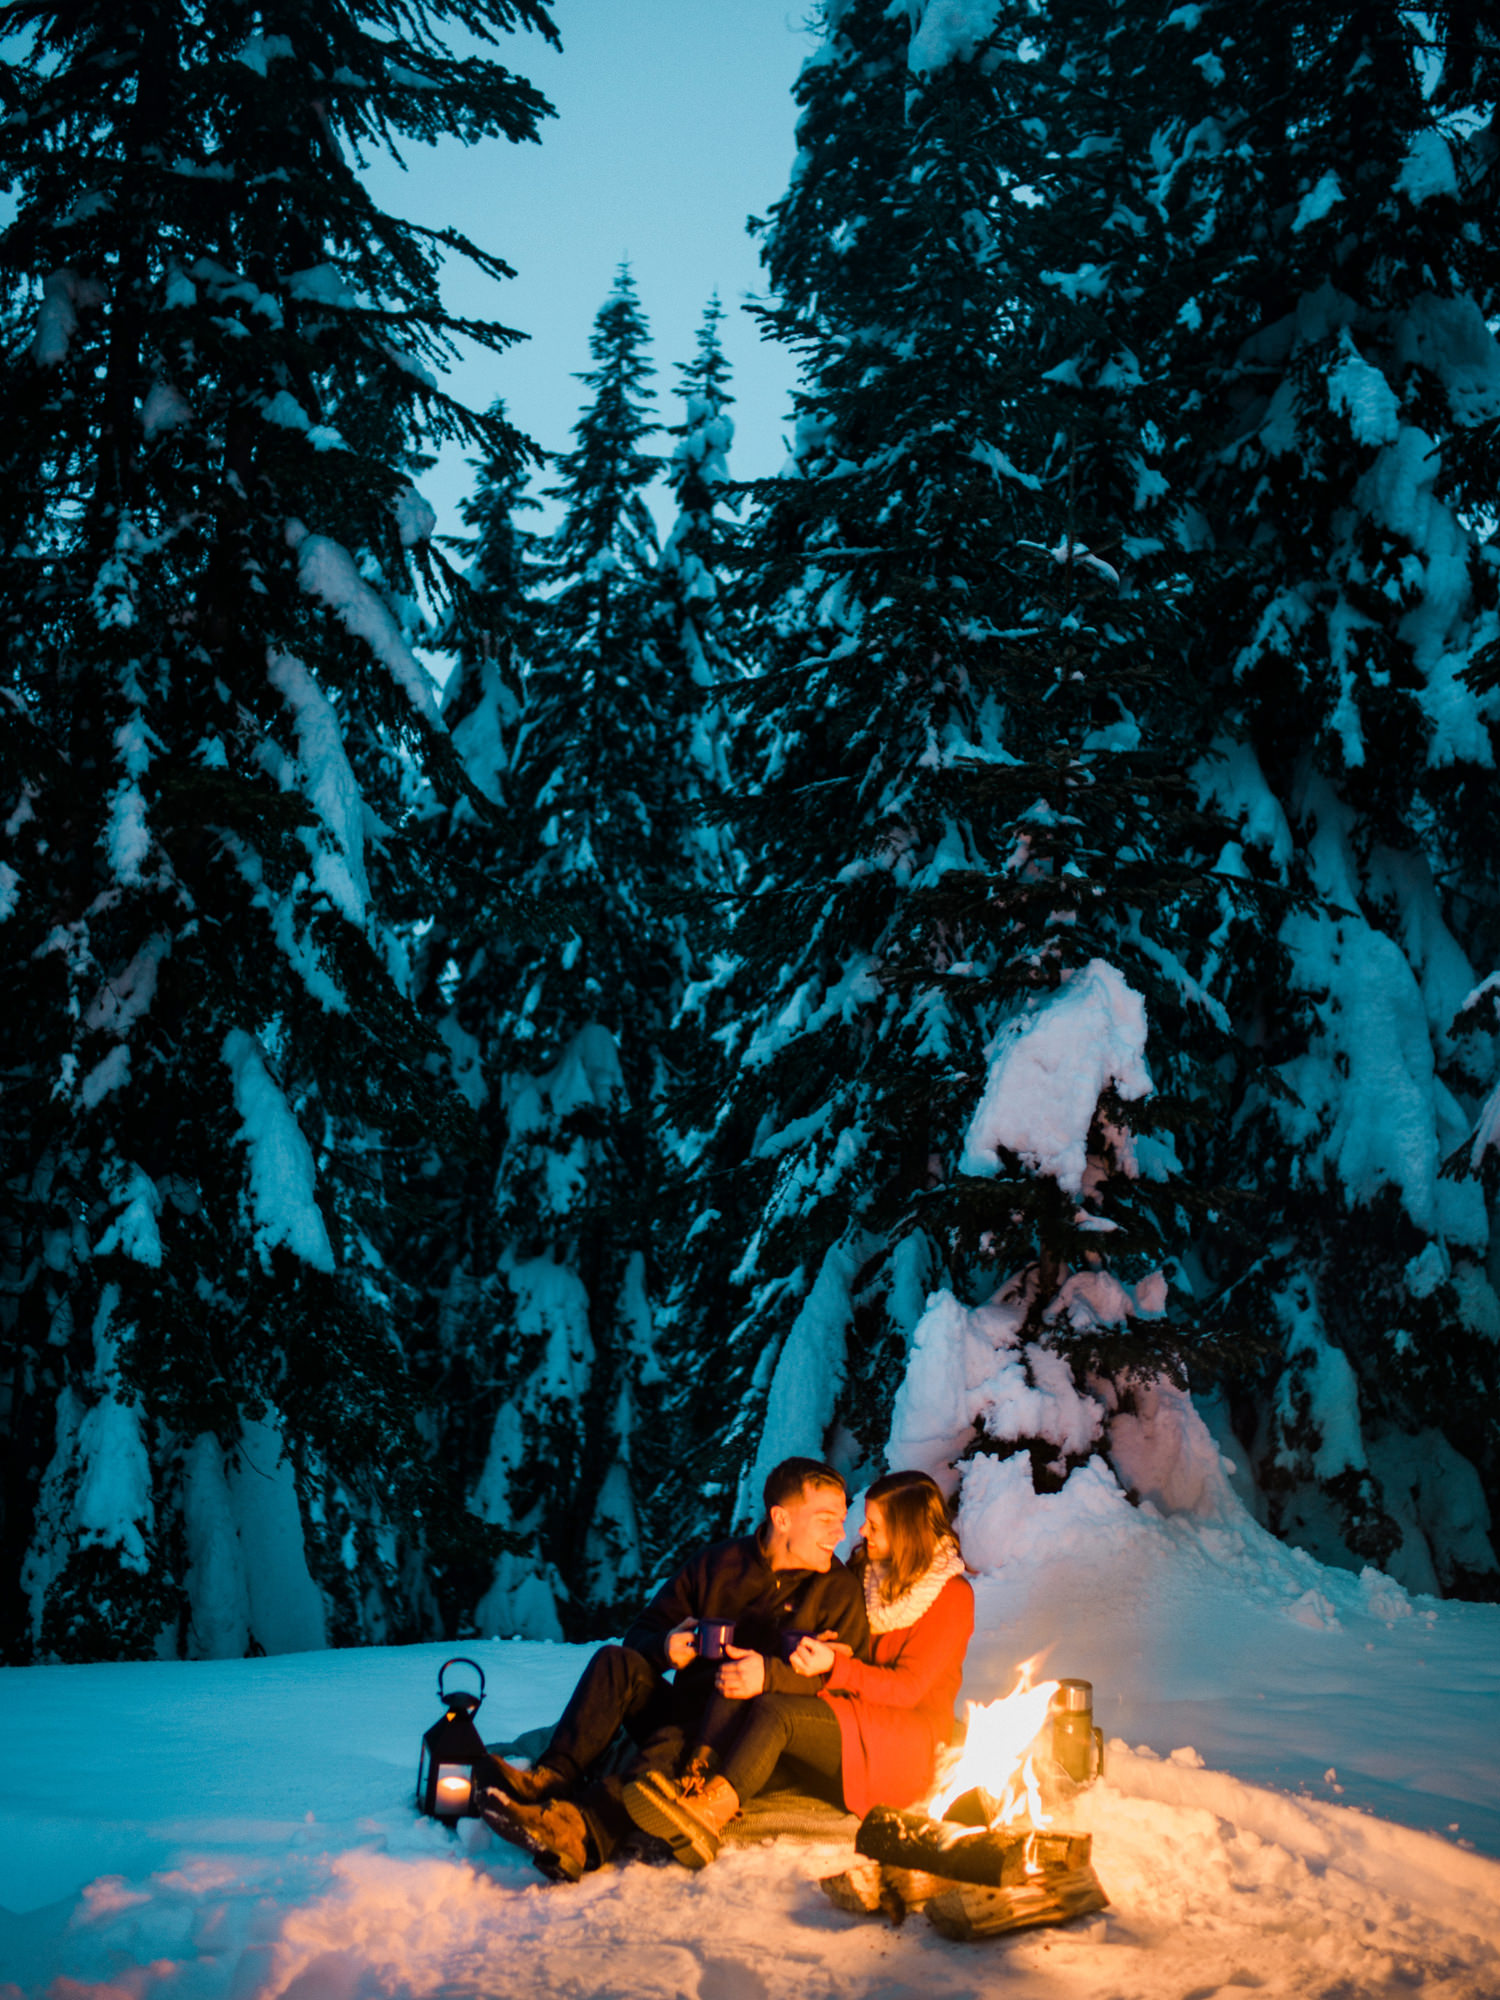 039-snoqualmie-mountain-engagement-session-seattle-film-wedding-photographer-ryan-flynn.jpg